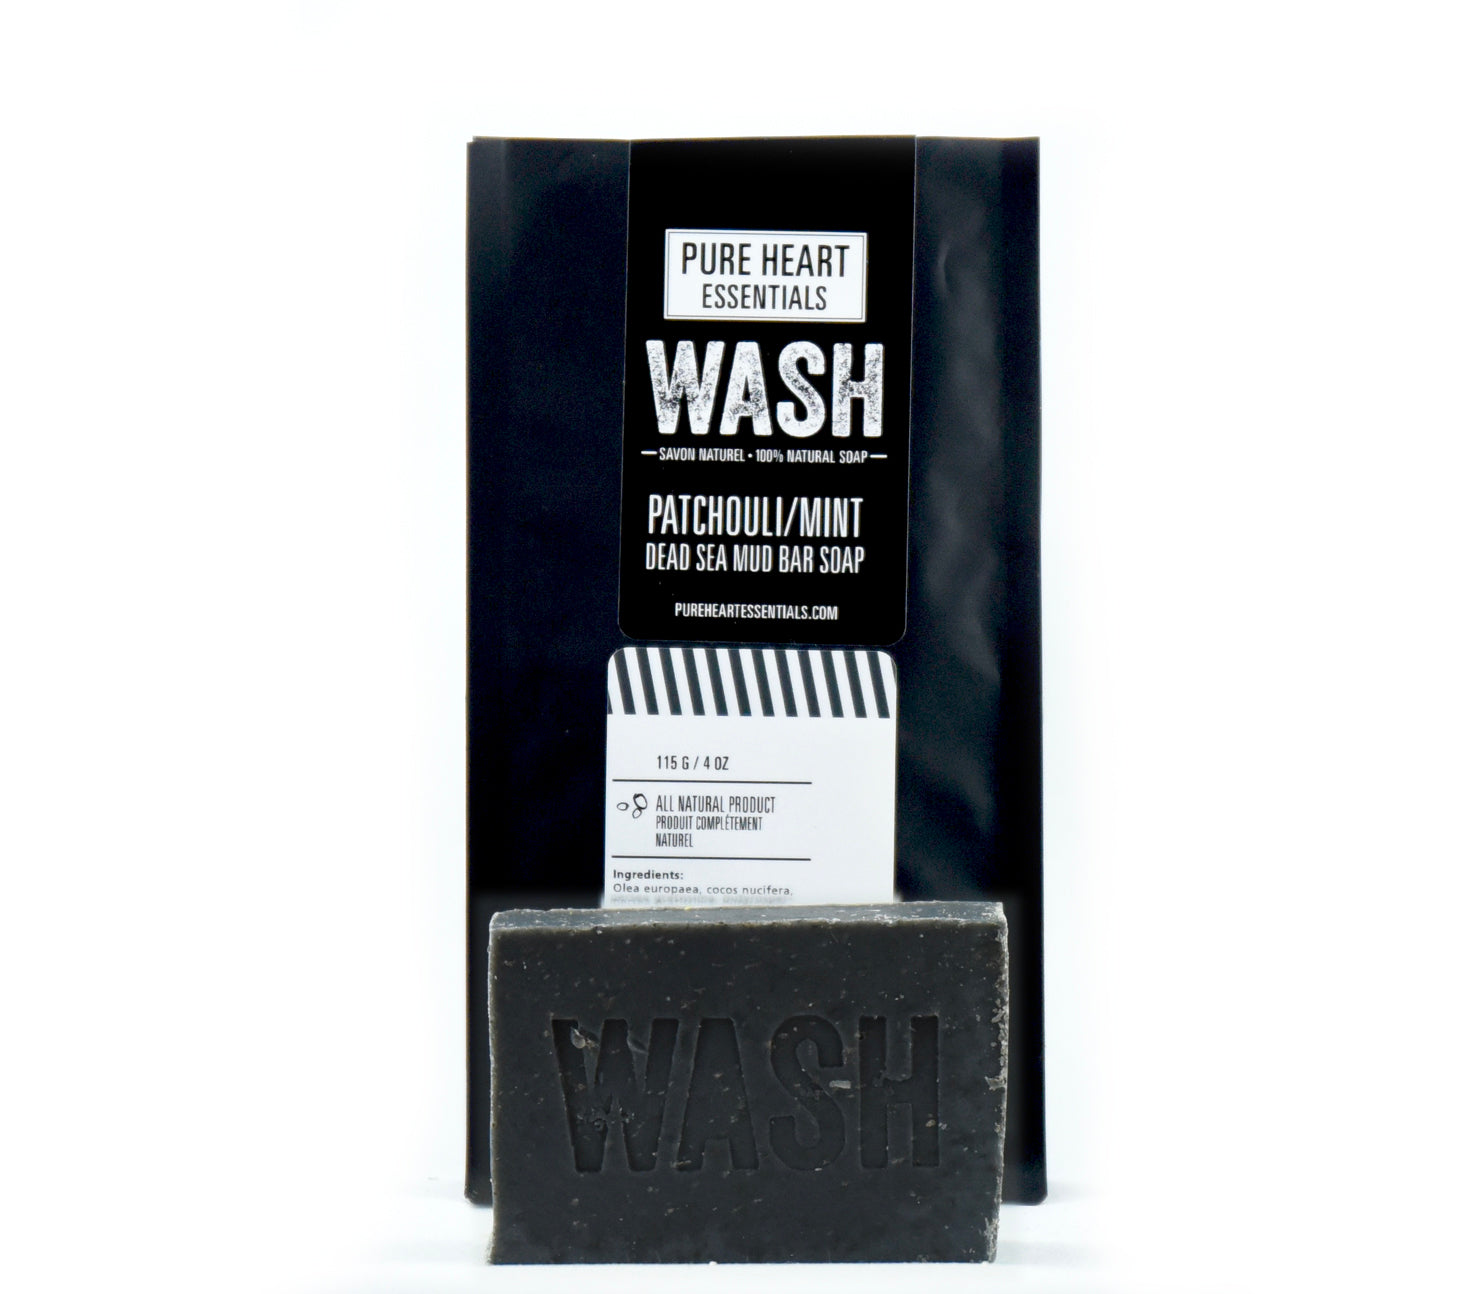 WASH – PATCHOULI/MINT & DEAD SEA MUD (VEGAN)